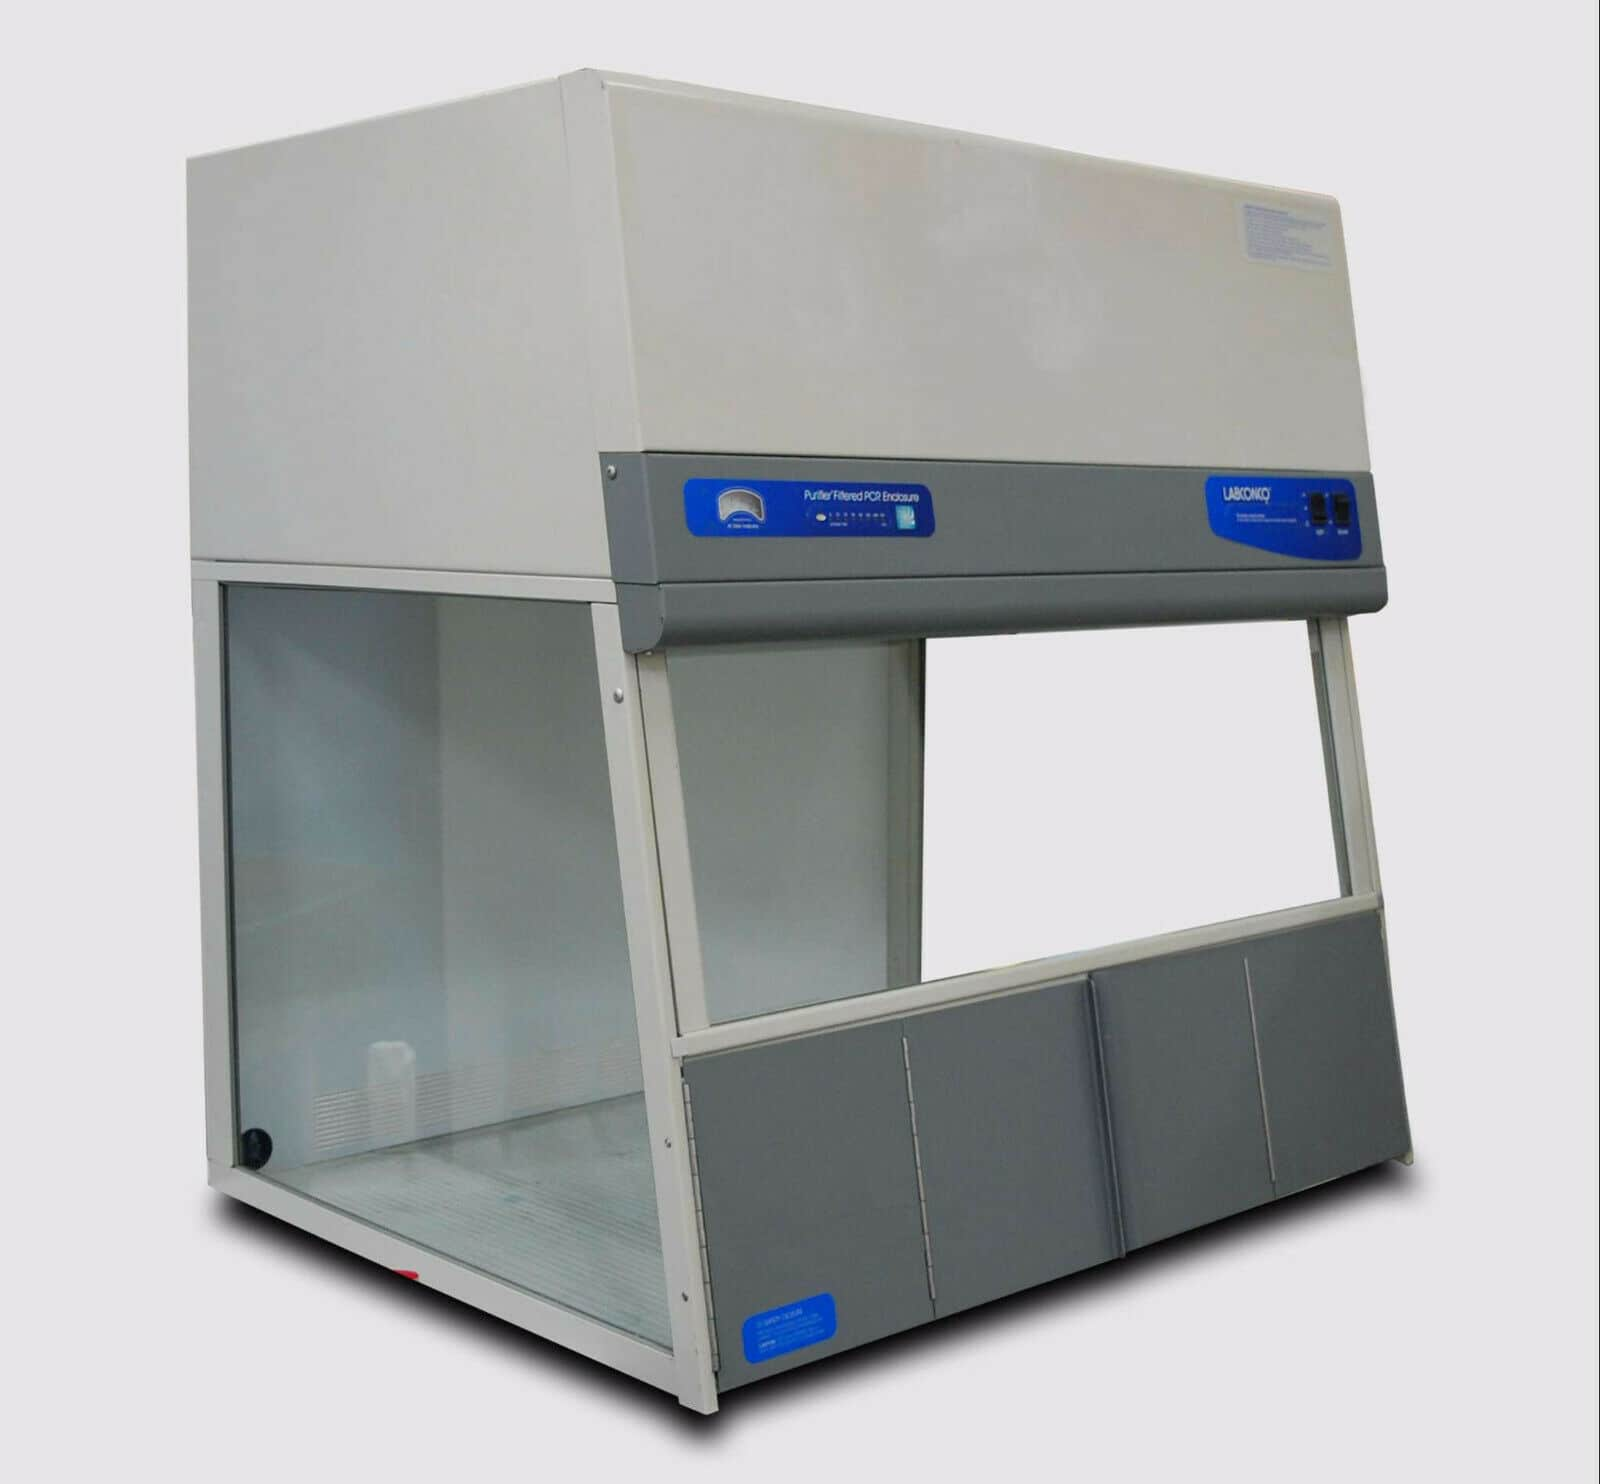 Filtered Realtime PCR Enclosure - Labconco Purifier 3970402, 48 inch